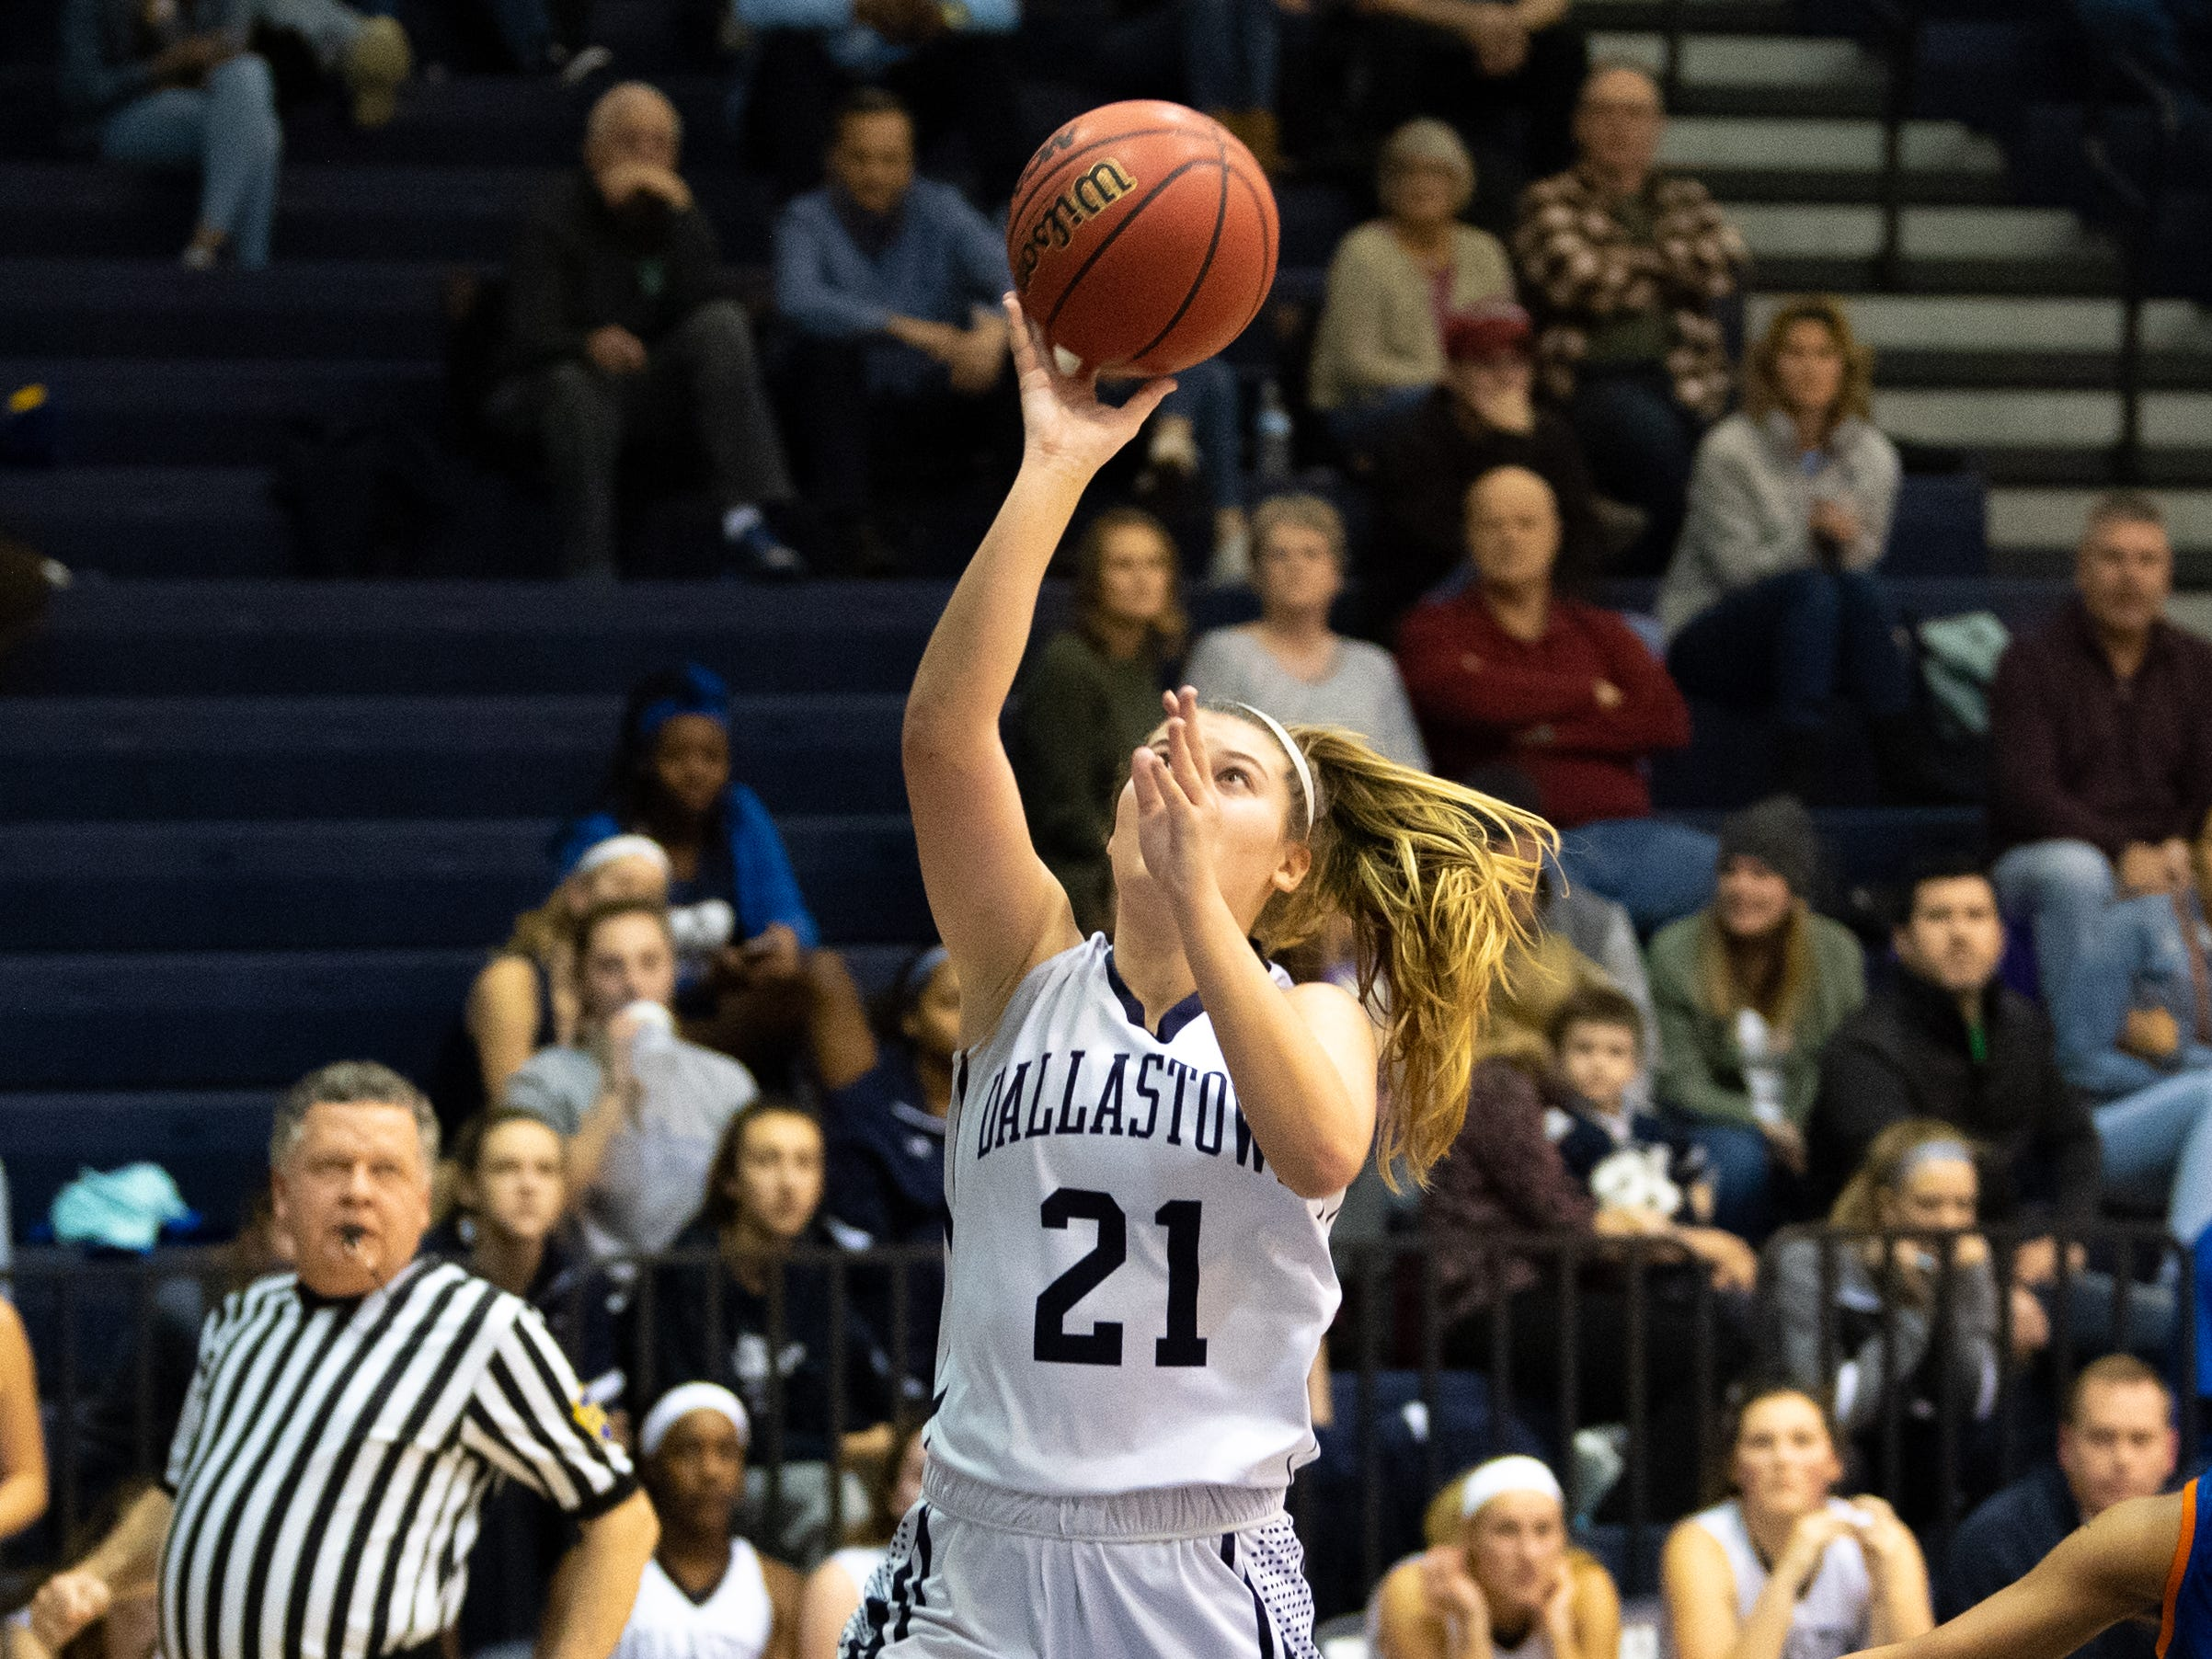 Madi Moore (21) of Dallastown scores on a fast break during the girls' basketball game between Dallastown and York High at Dallastown High School, December 14, 2018. The Wildcats defeated the Bearcats 62-31.